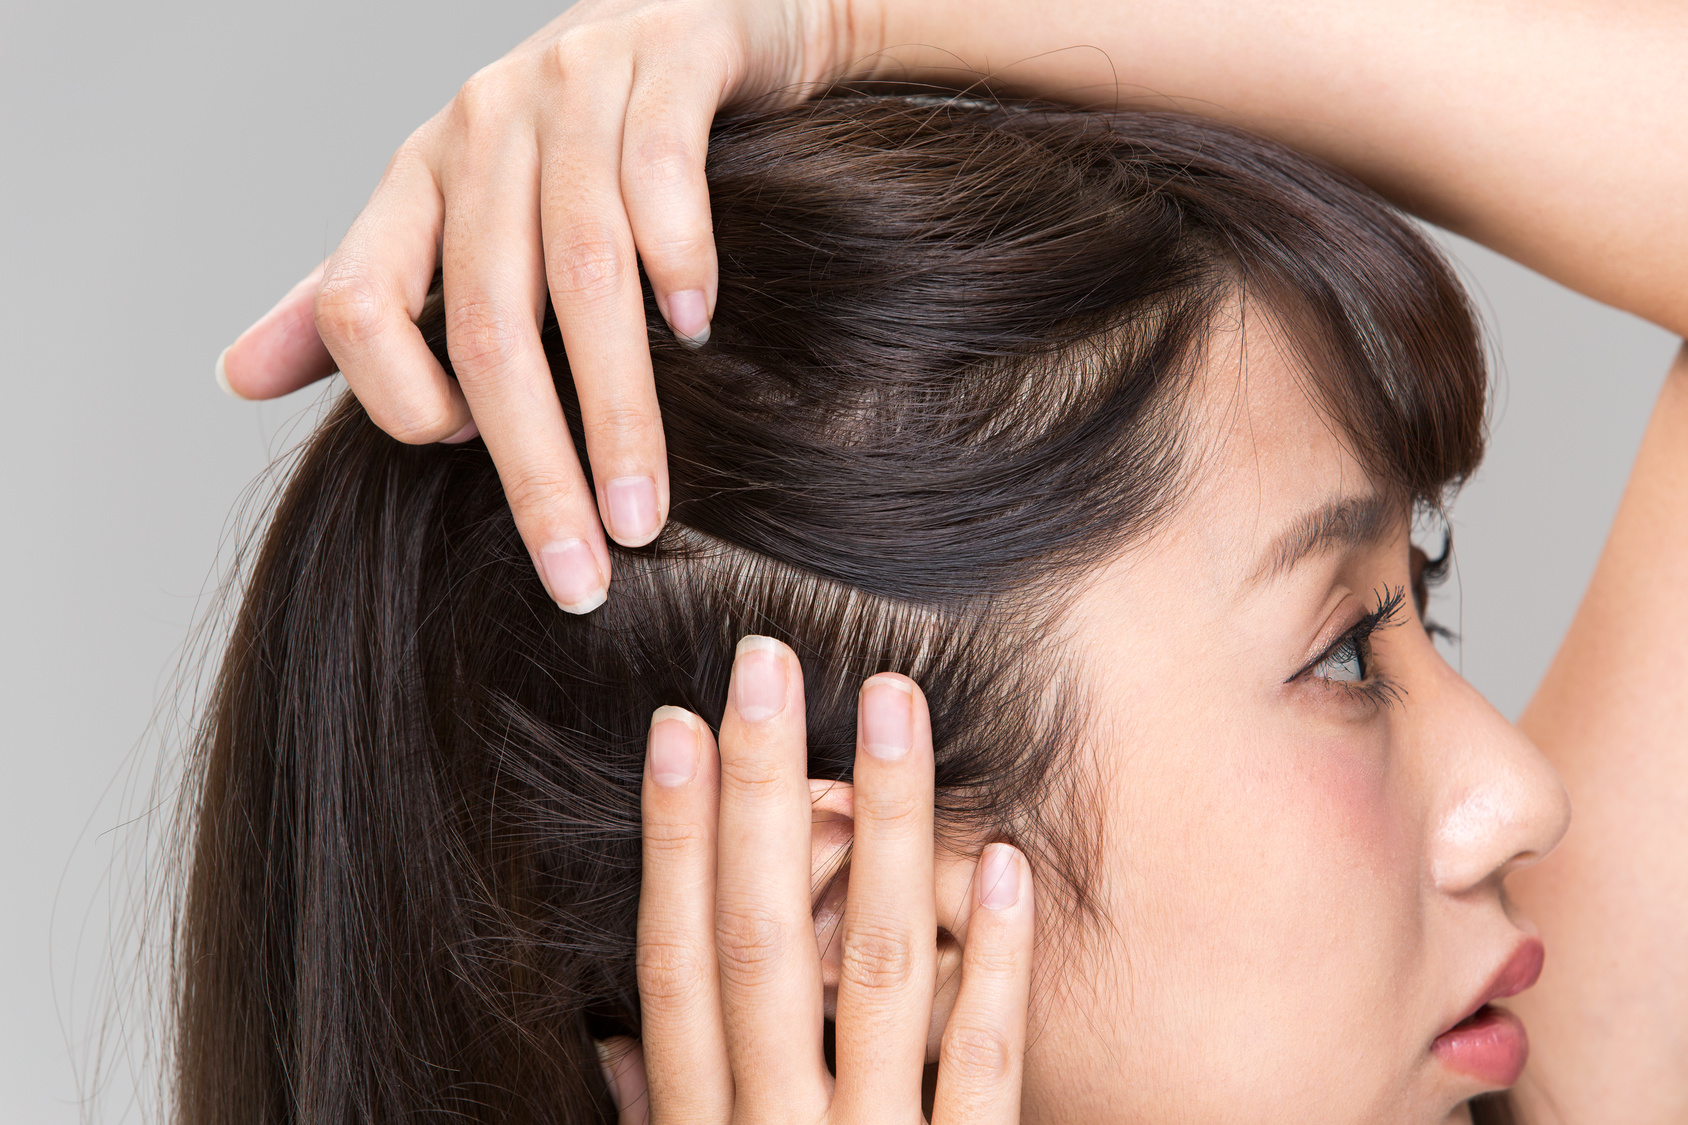 how to scalp massage 1